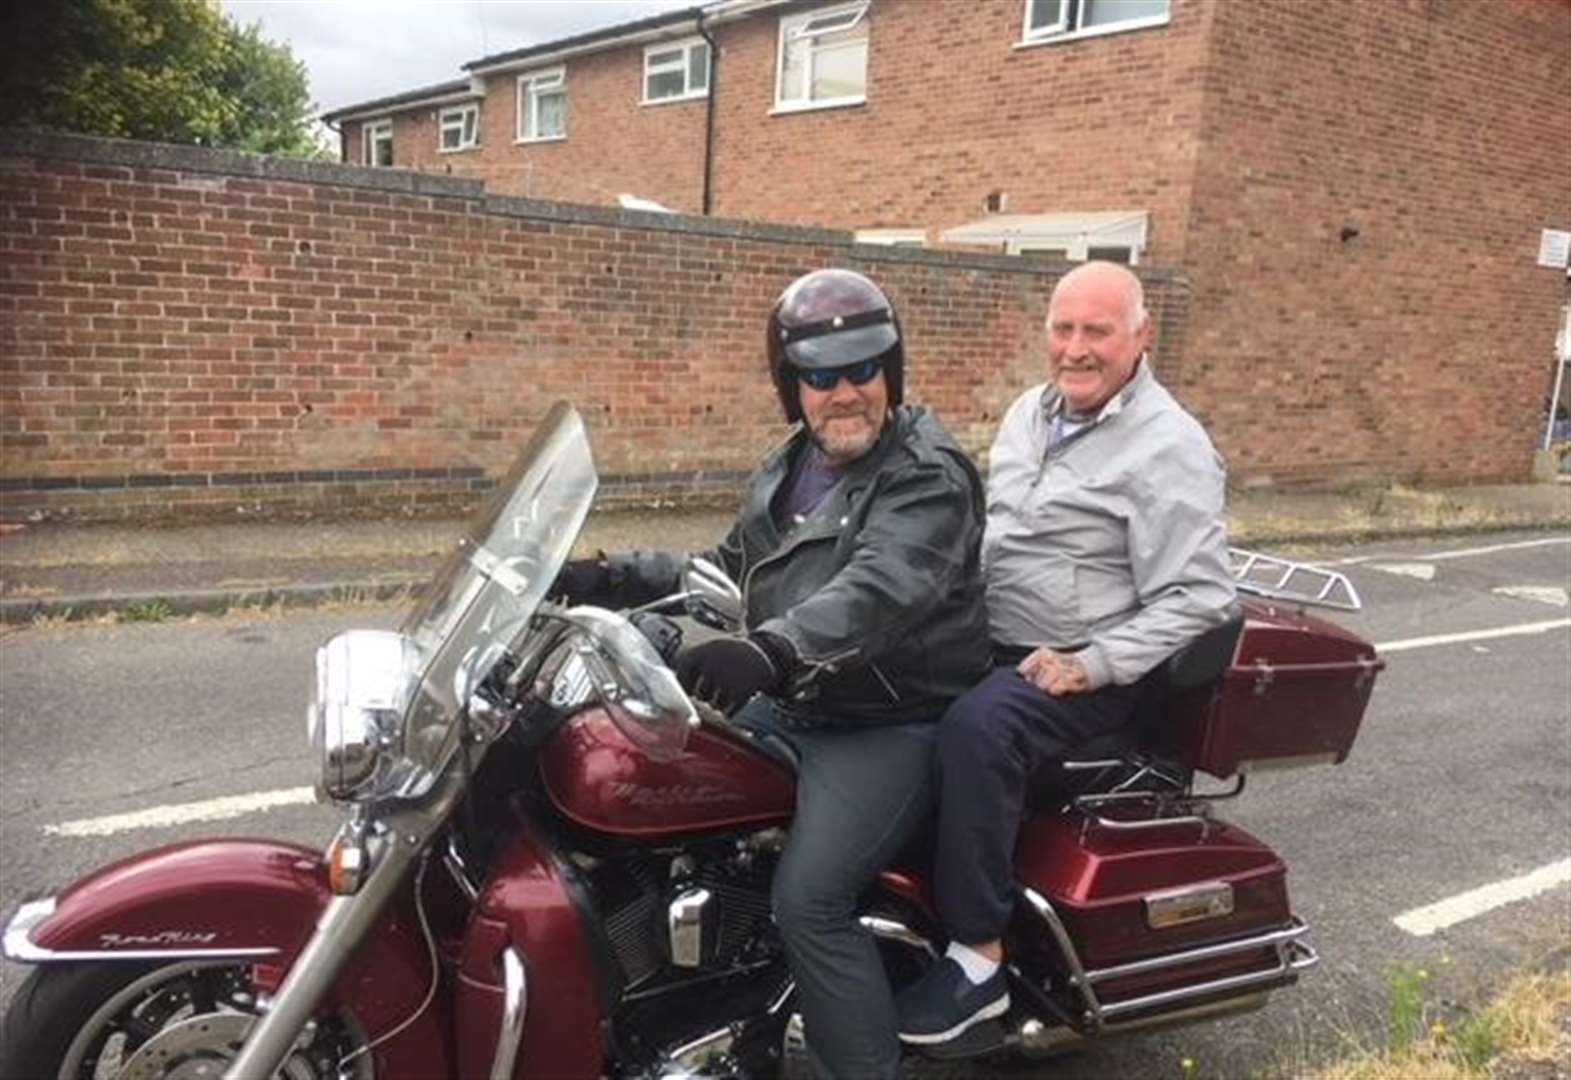 Bury St Edmunds woman thanks Harley rider who gave that 'little extra' to friend